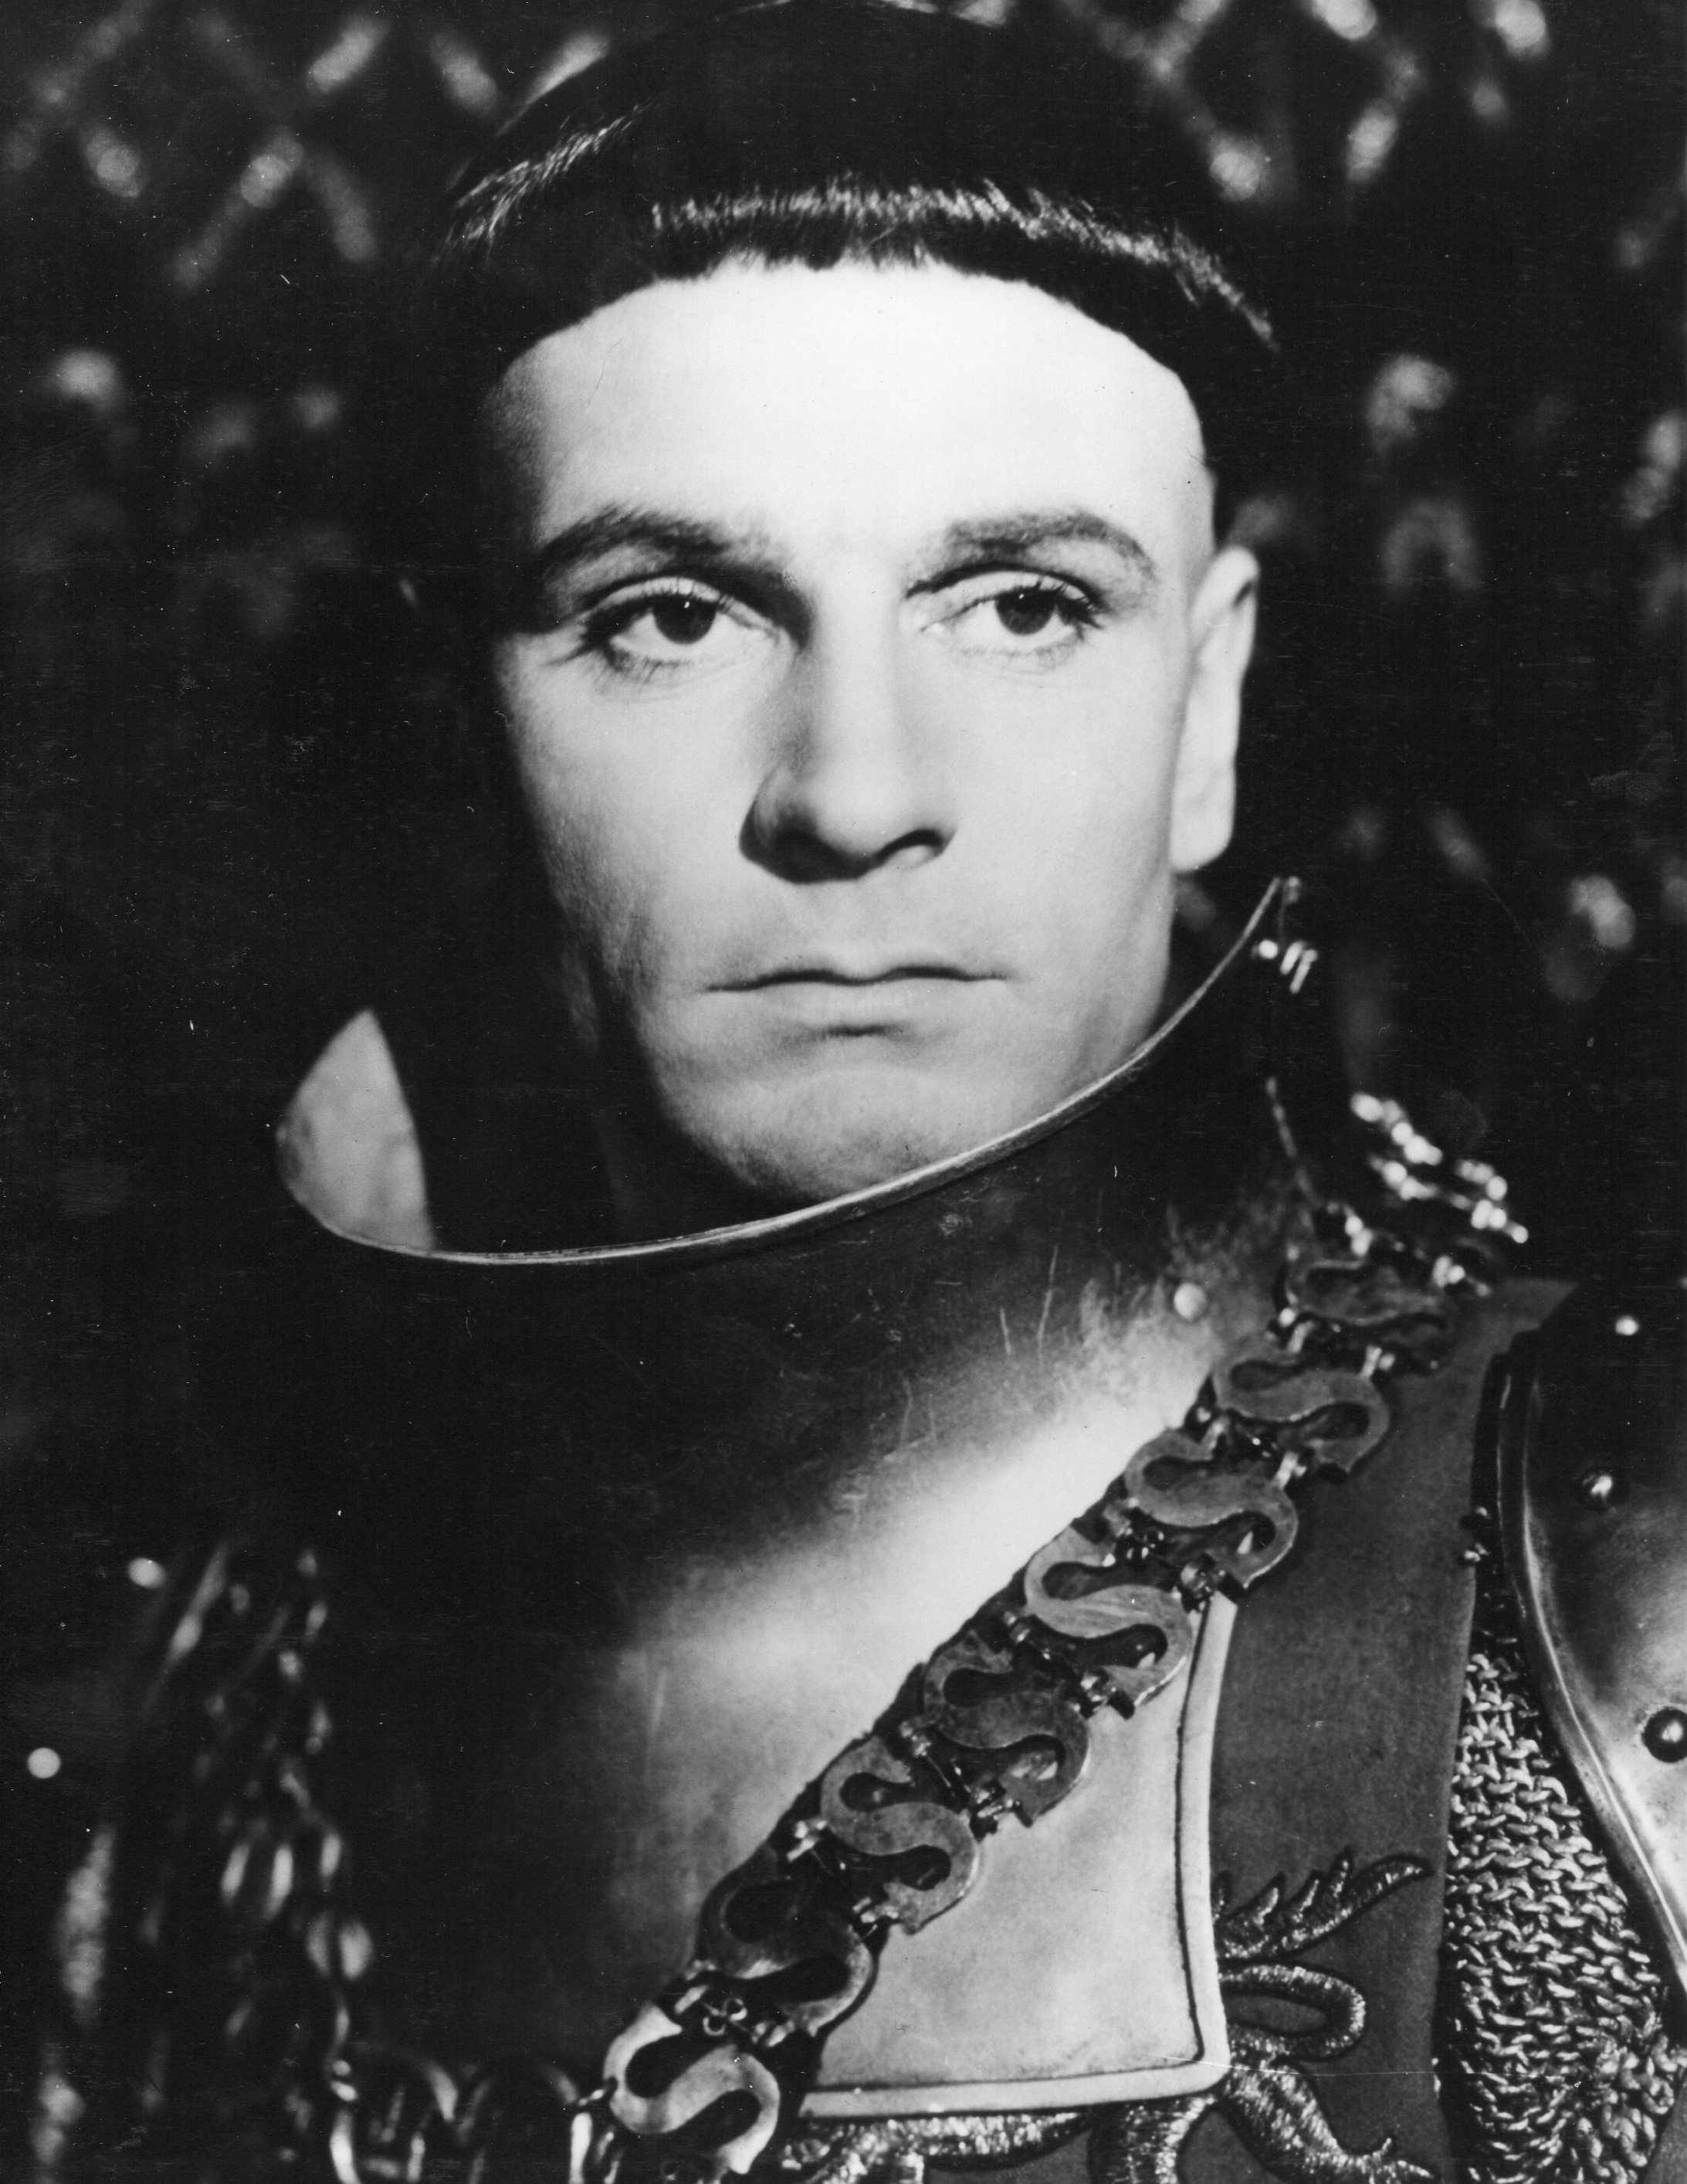 Henry V - Sir Laurence Olivier (1944 film, thanks to Charles Ferris)